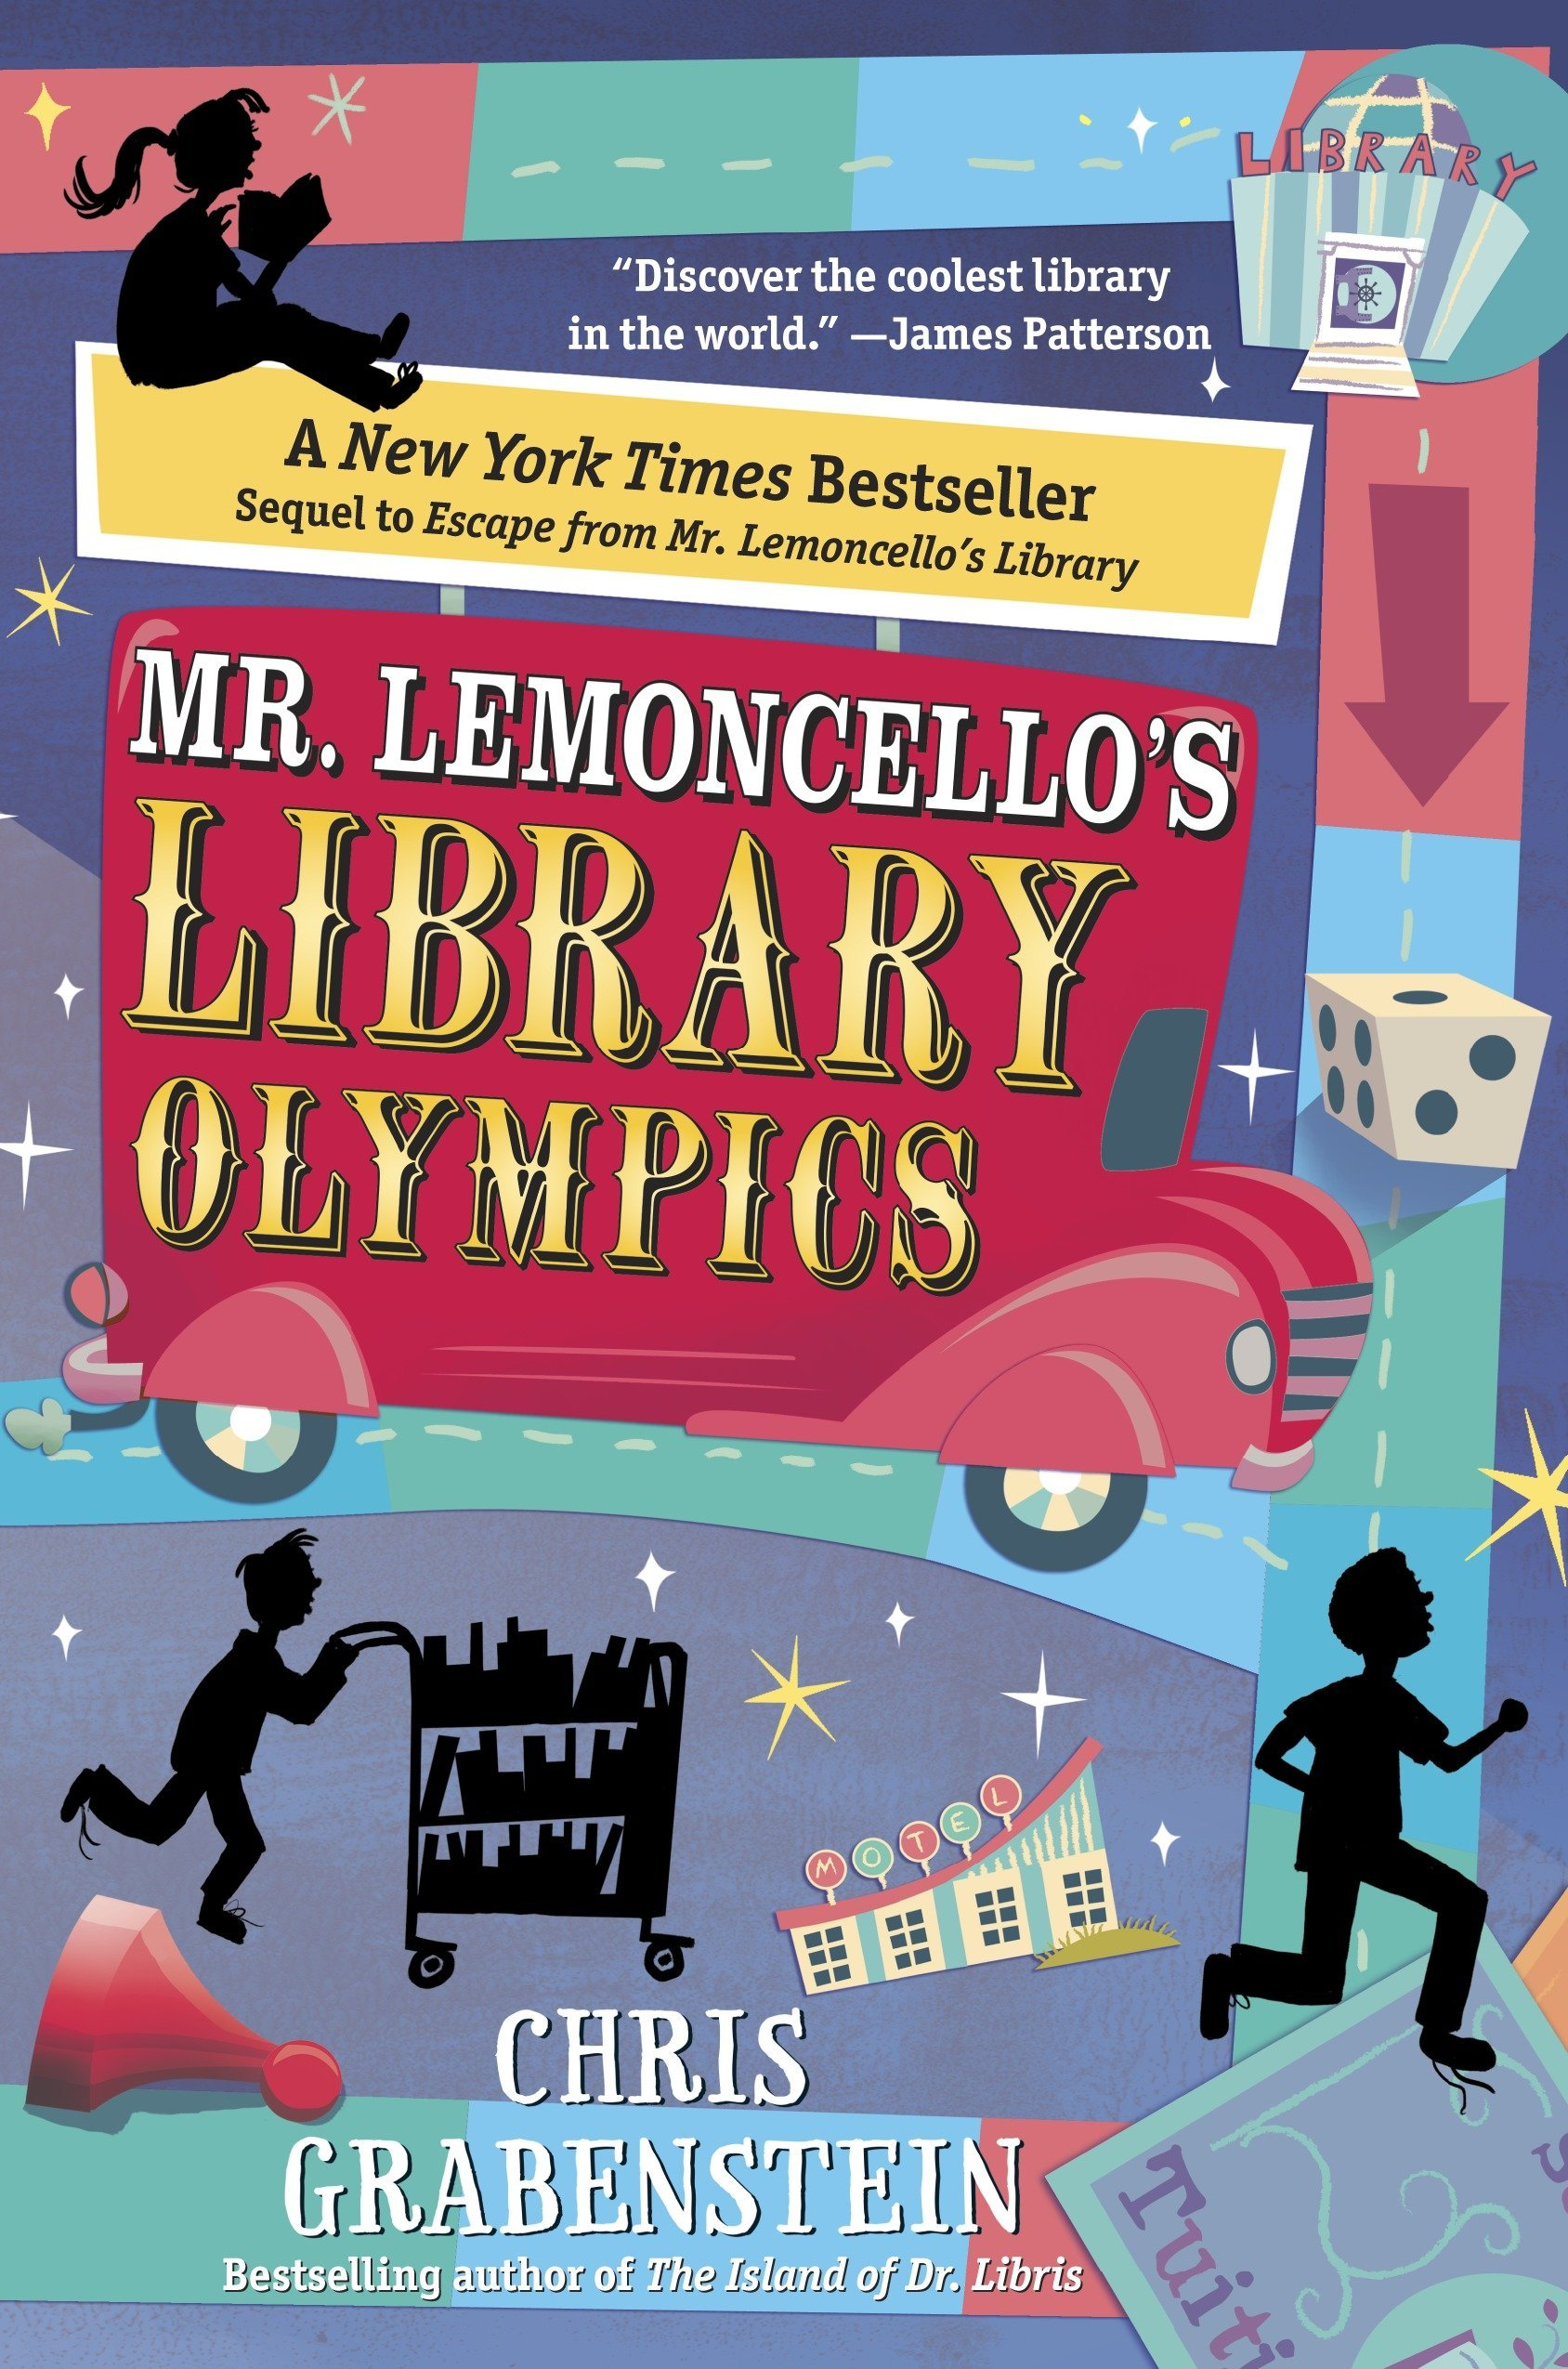 Image result for children's book library olympics